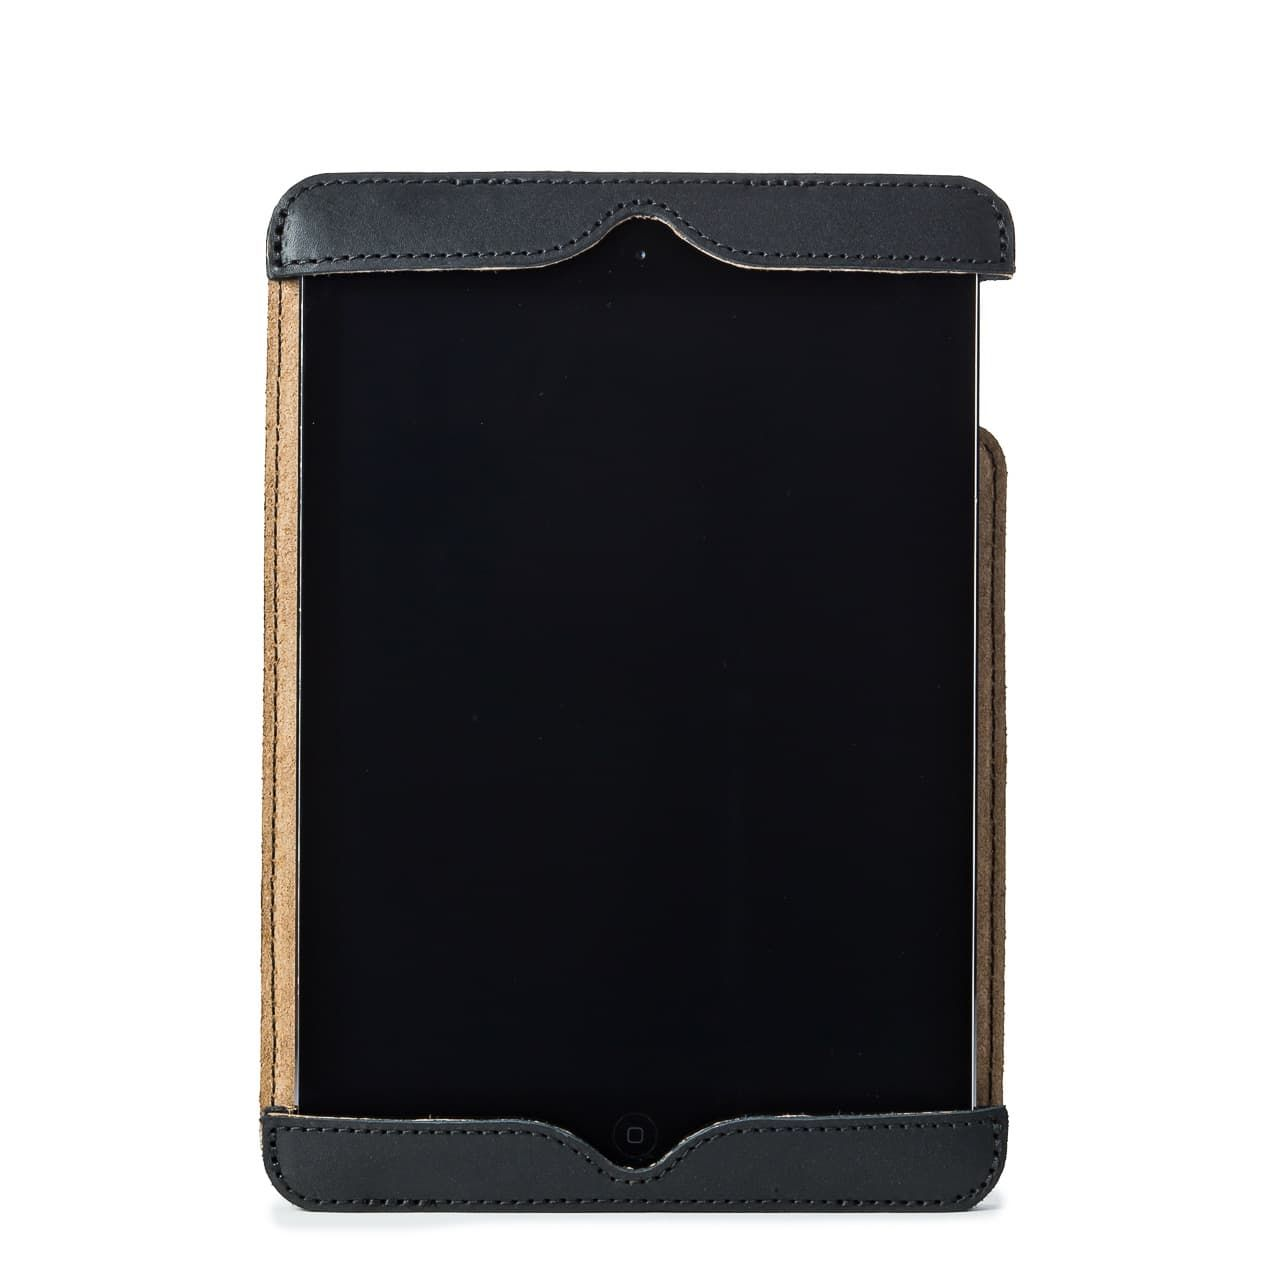 Simple iPad Case in color Black front with an iPad